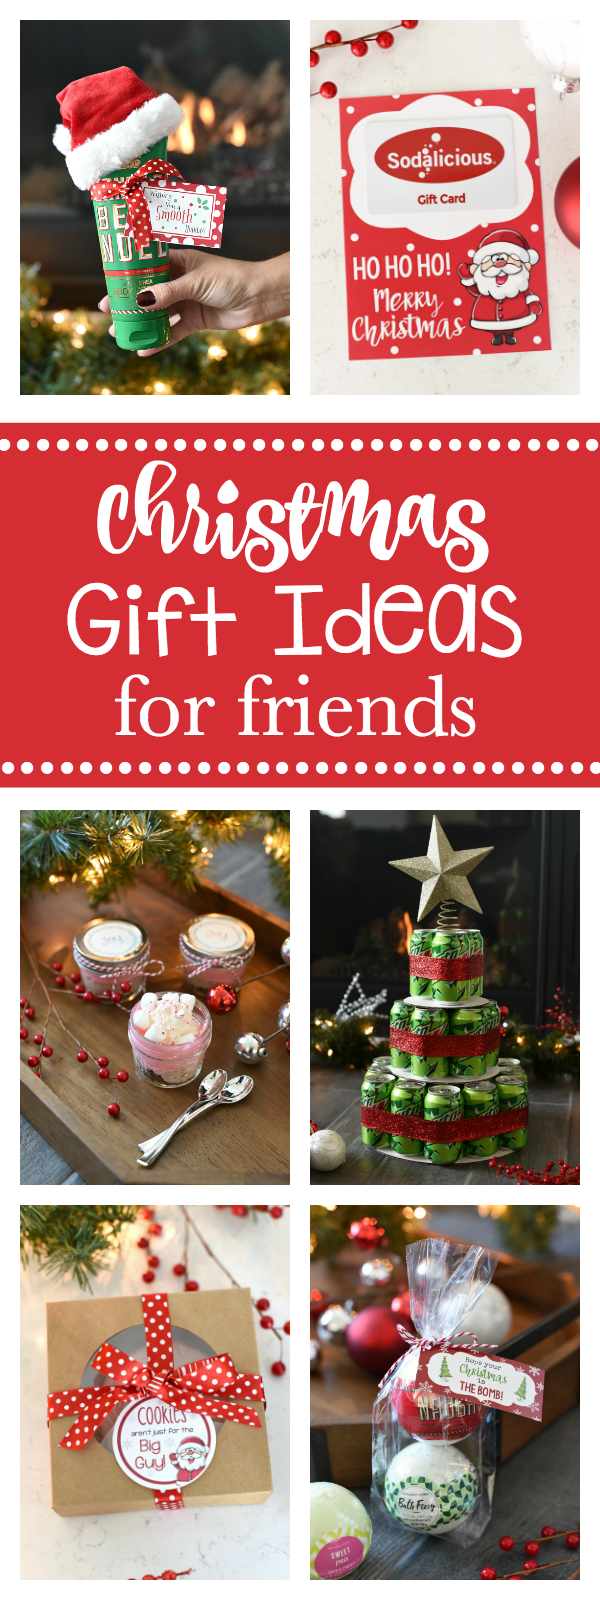 Great Gift Ideas for your Best Girlfriends or BFFs this Christmas